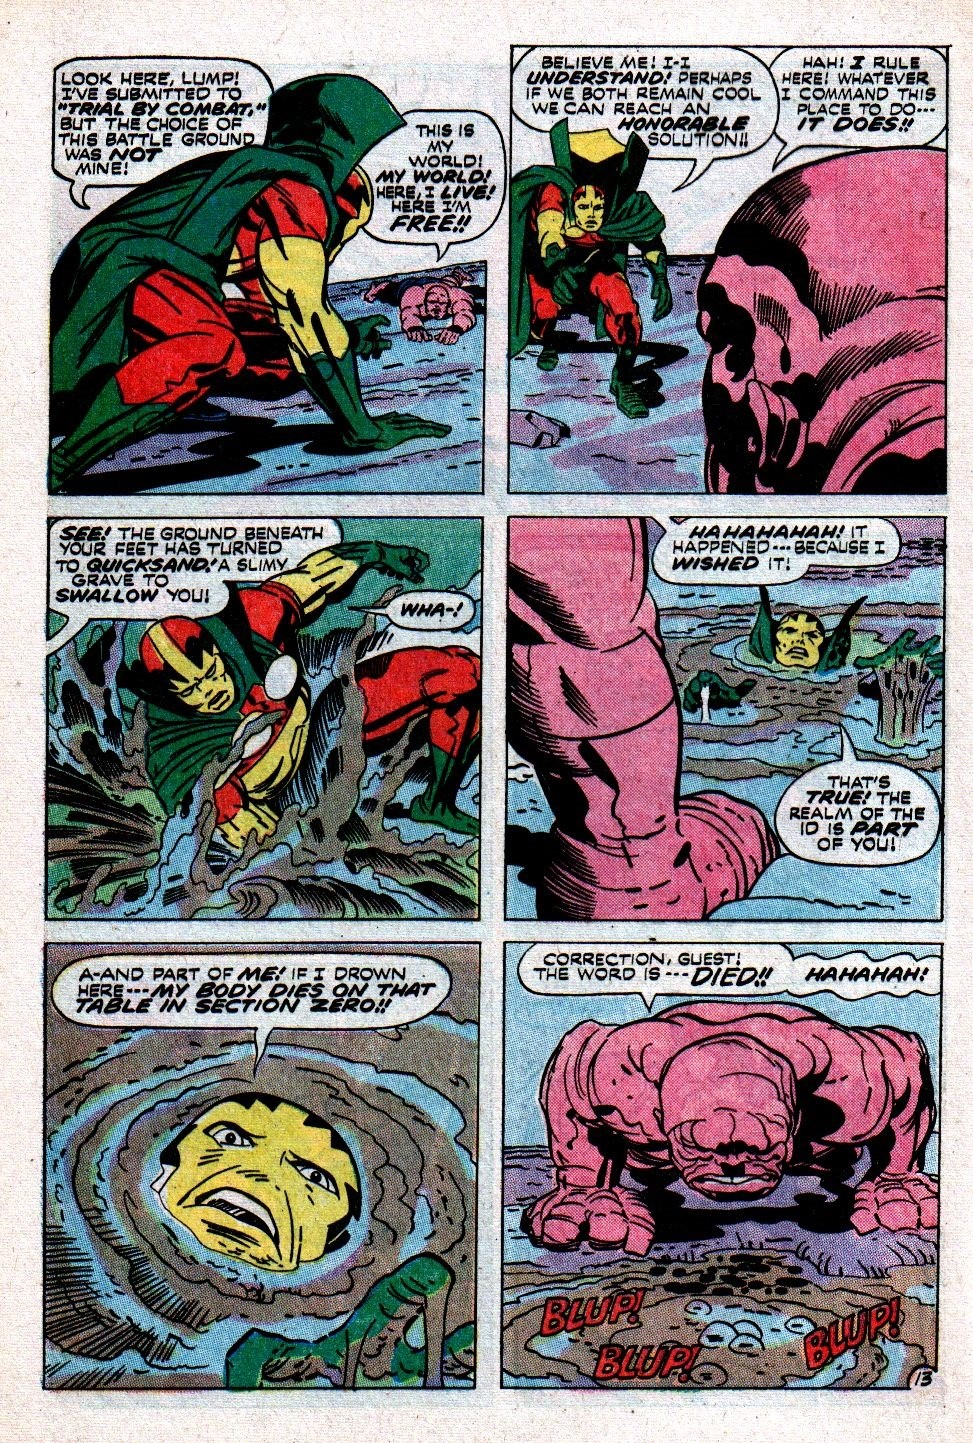 Mister Miracle Vol 1 #8